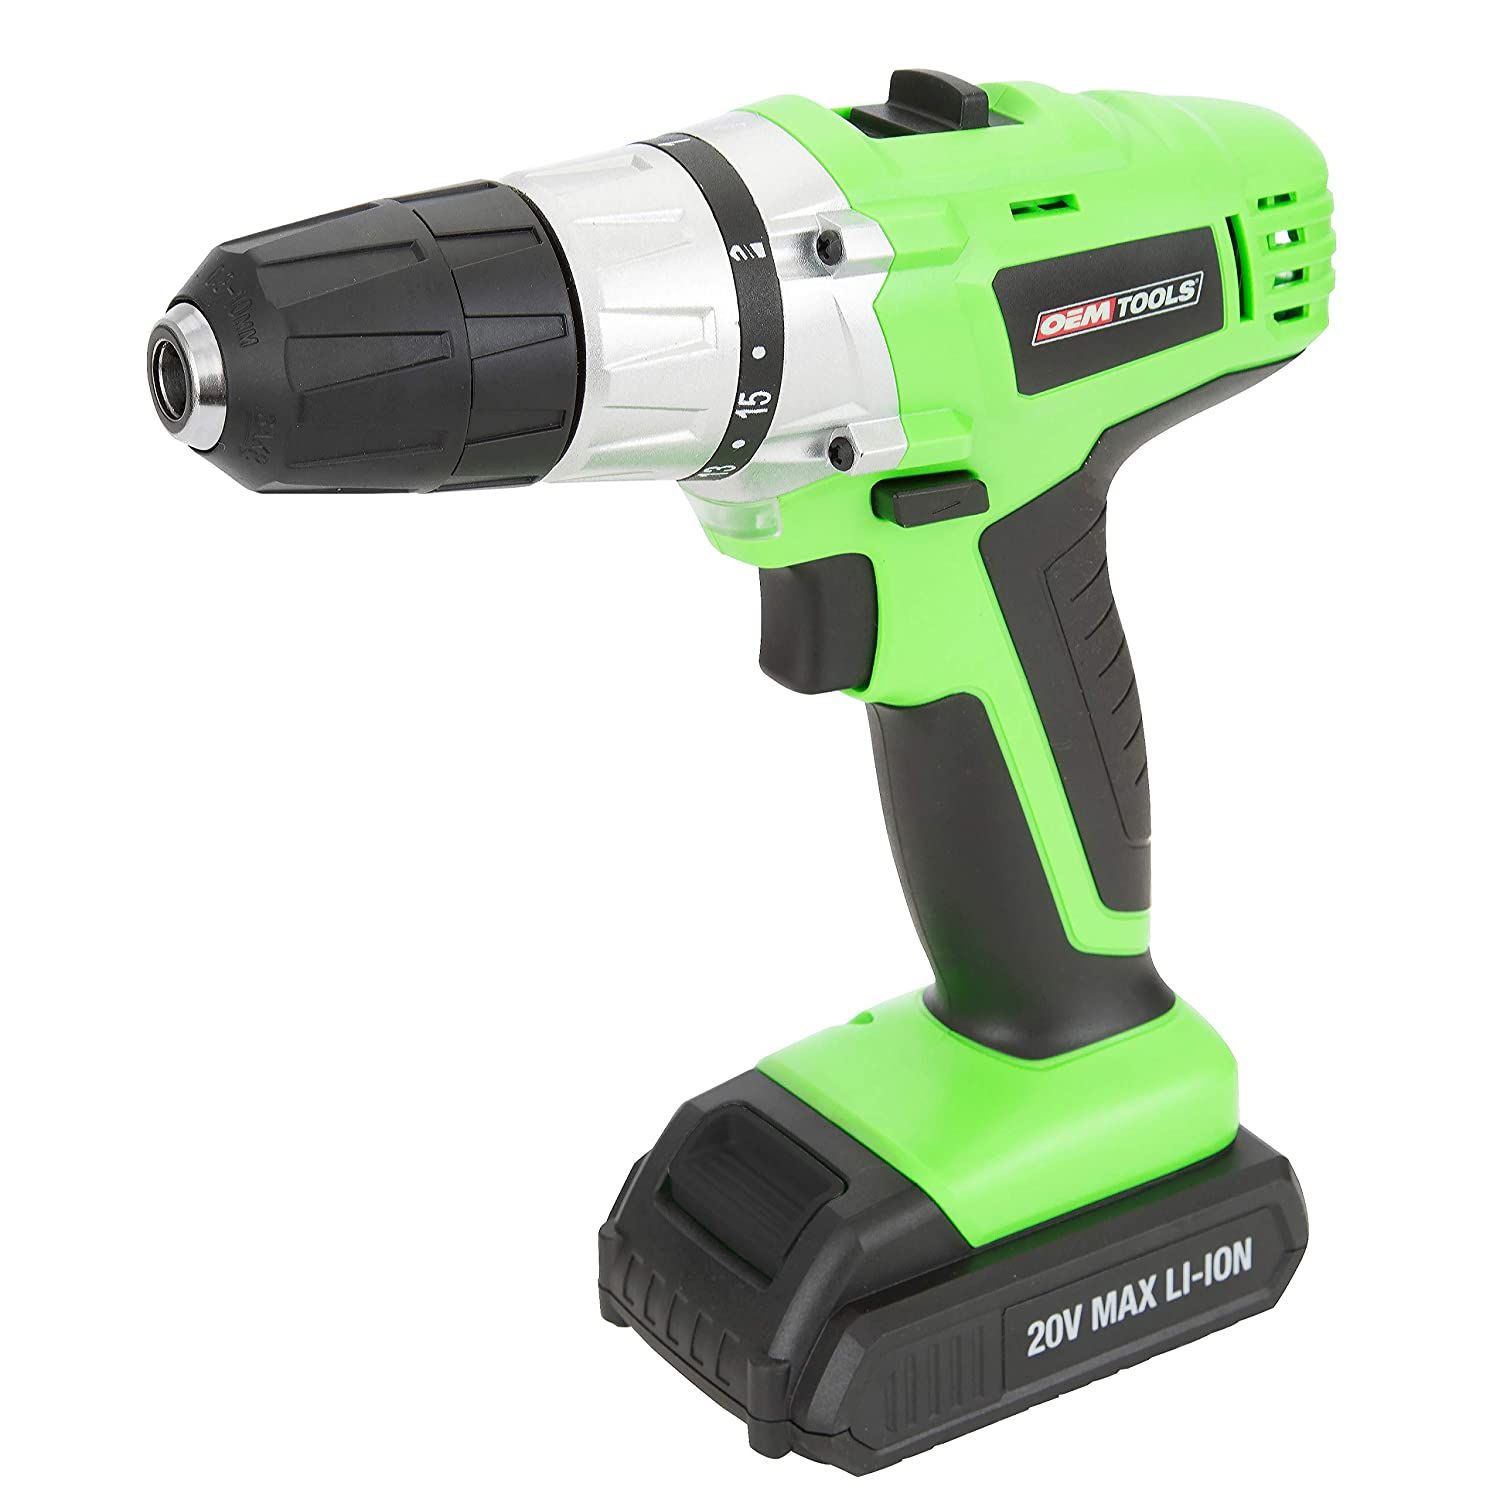 OEMTOOLS 24660 20 Volt Max Lithium Ion 3/8 Inch Drive Cordless Drill